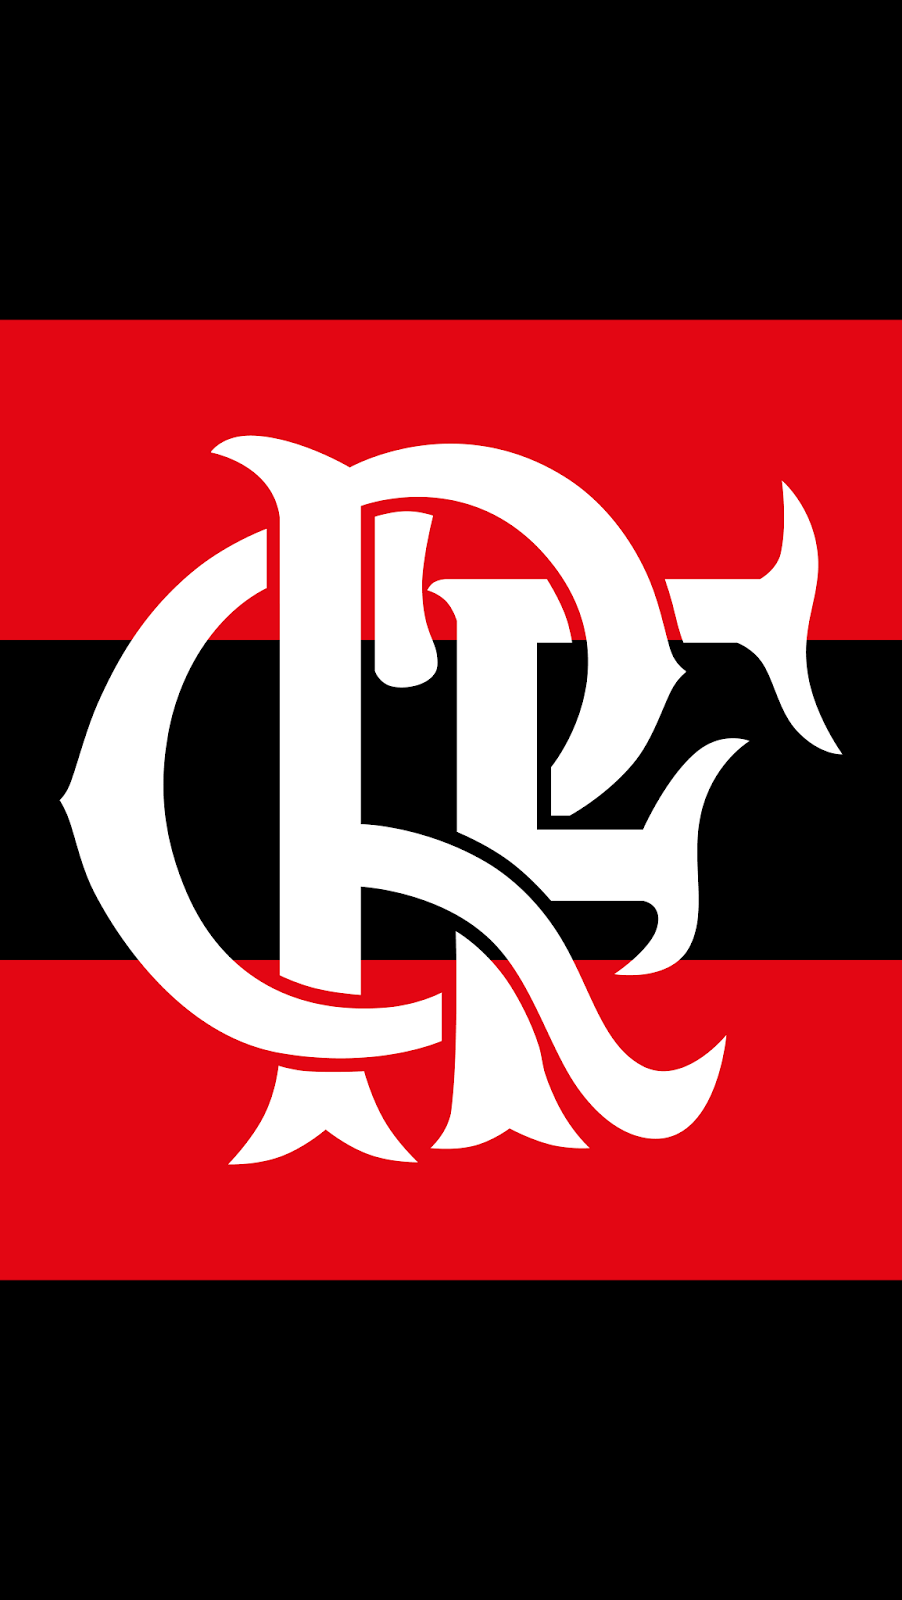 Wallpaper flamengo para celular gratis for Wallpaper para celular